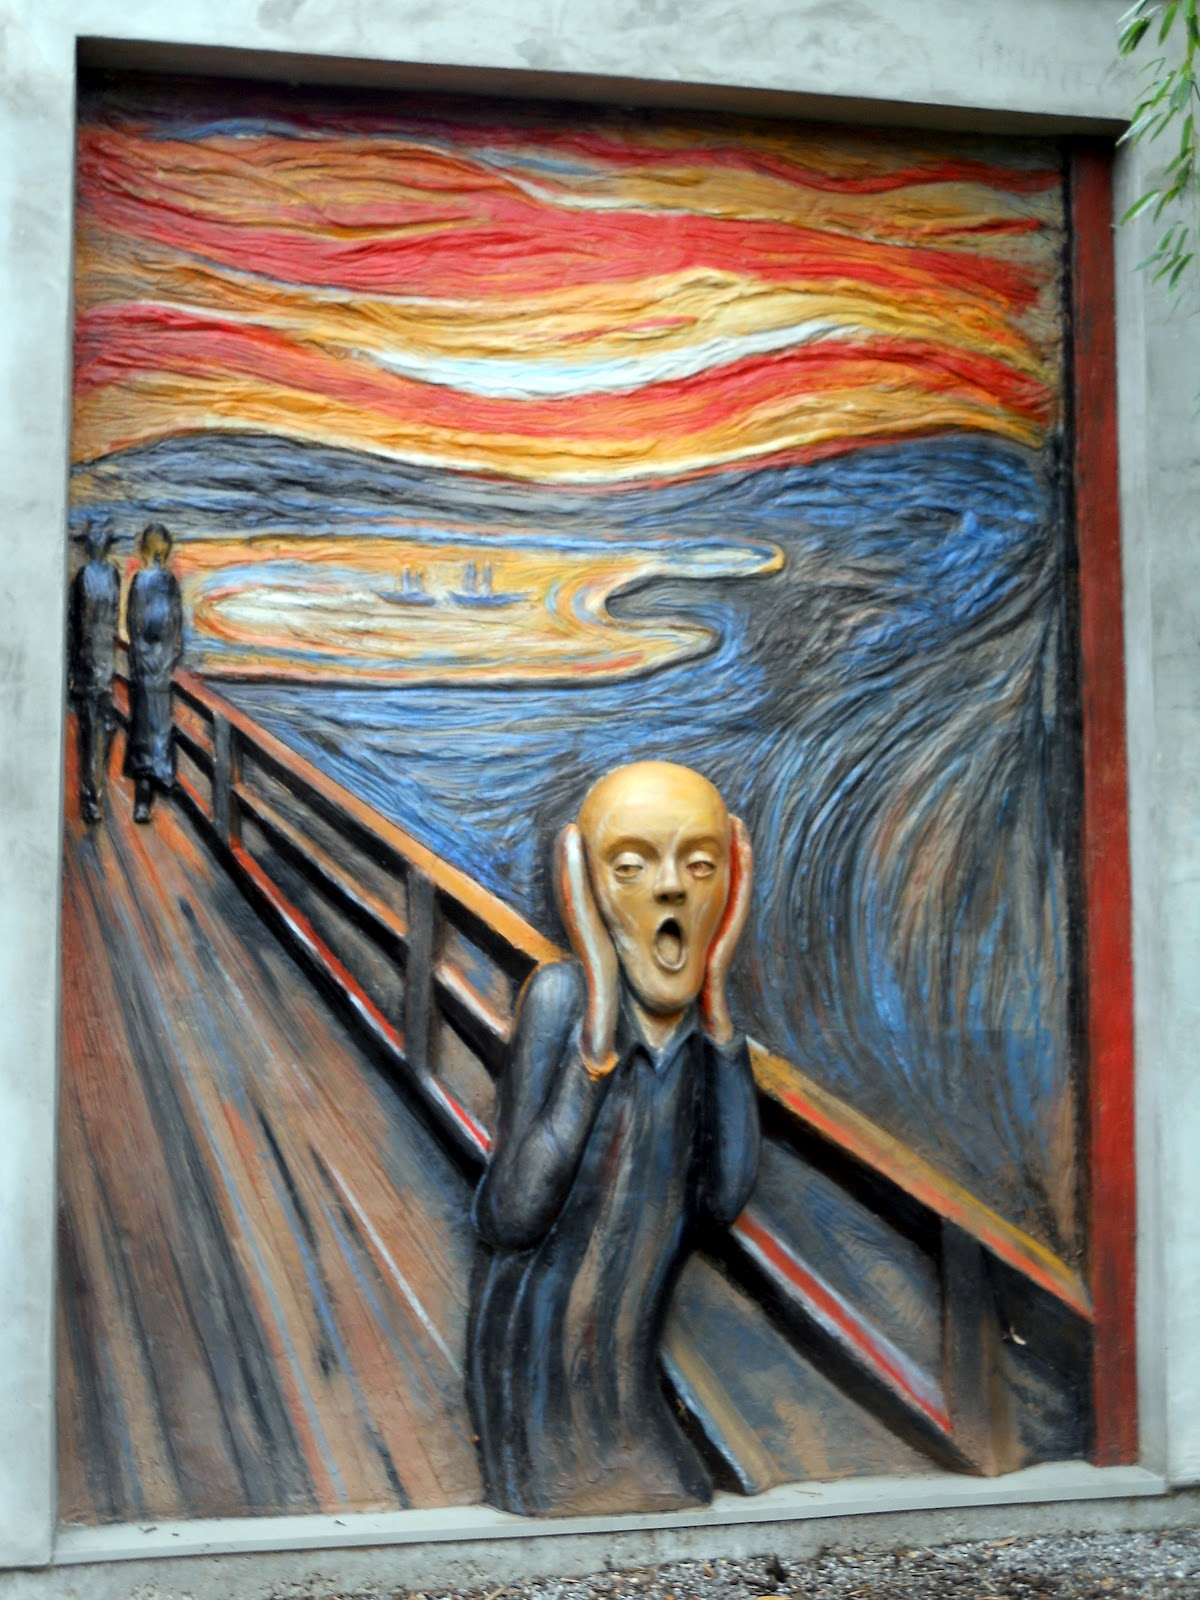 Edvard Munch The Scream Parody The screamThe Scream Edvard Munch Parody